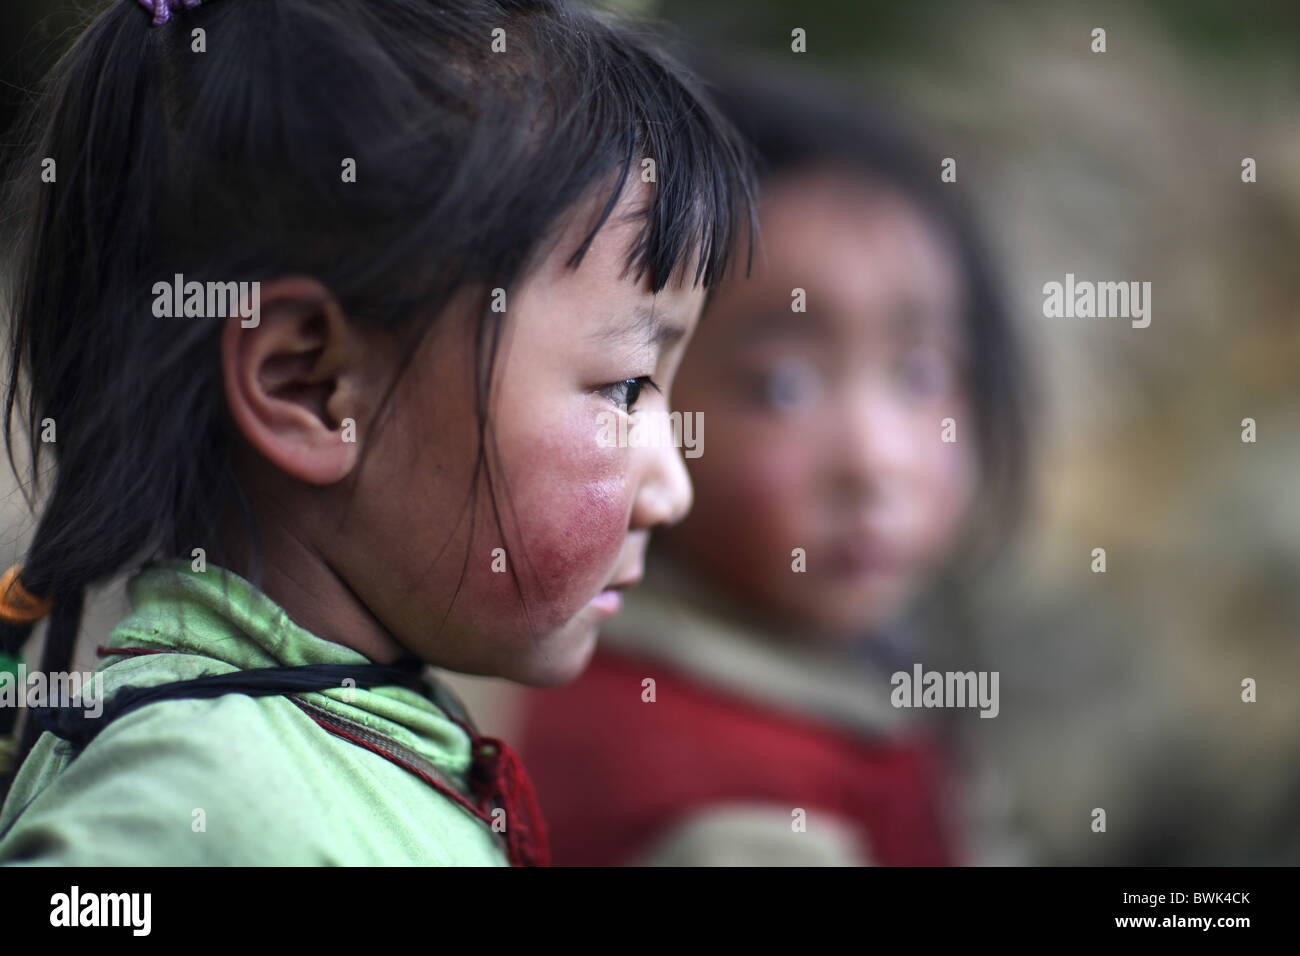 Local tibetan children in Litang, Sichuan province, southwest China - Stock Image